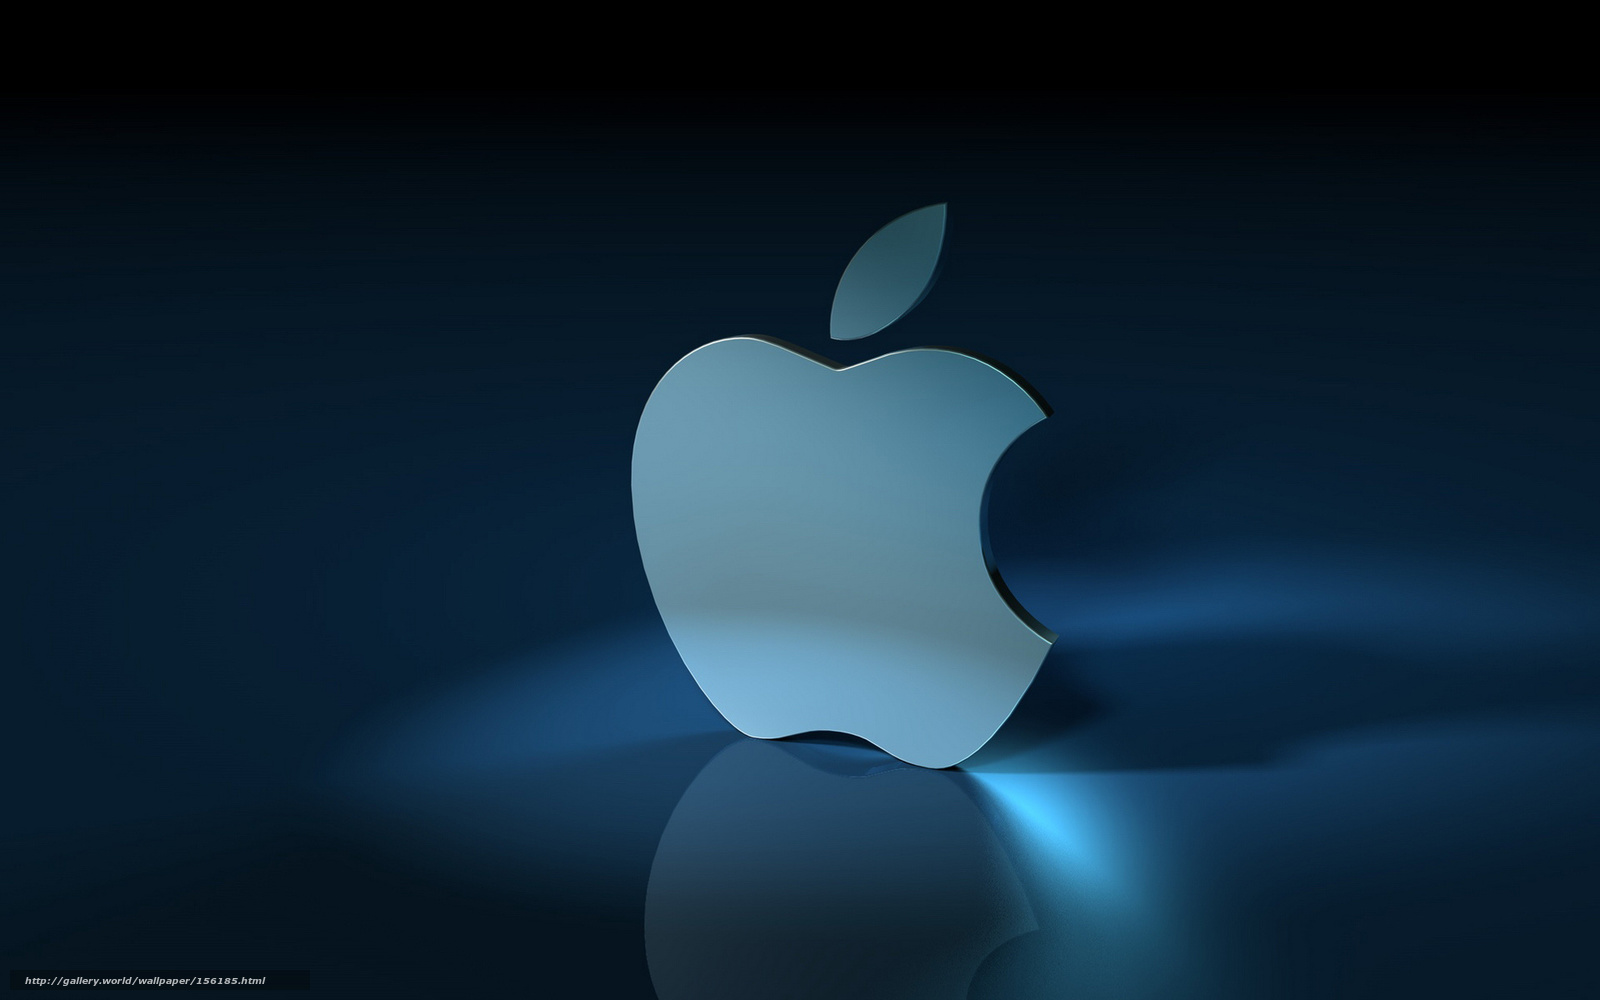 wallpapers mac apple gdefon original 1920x1200 1600x1000